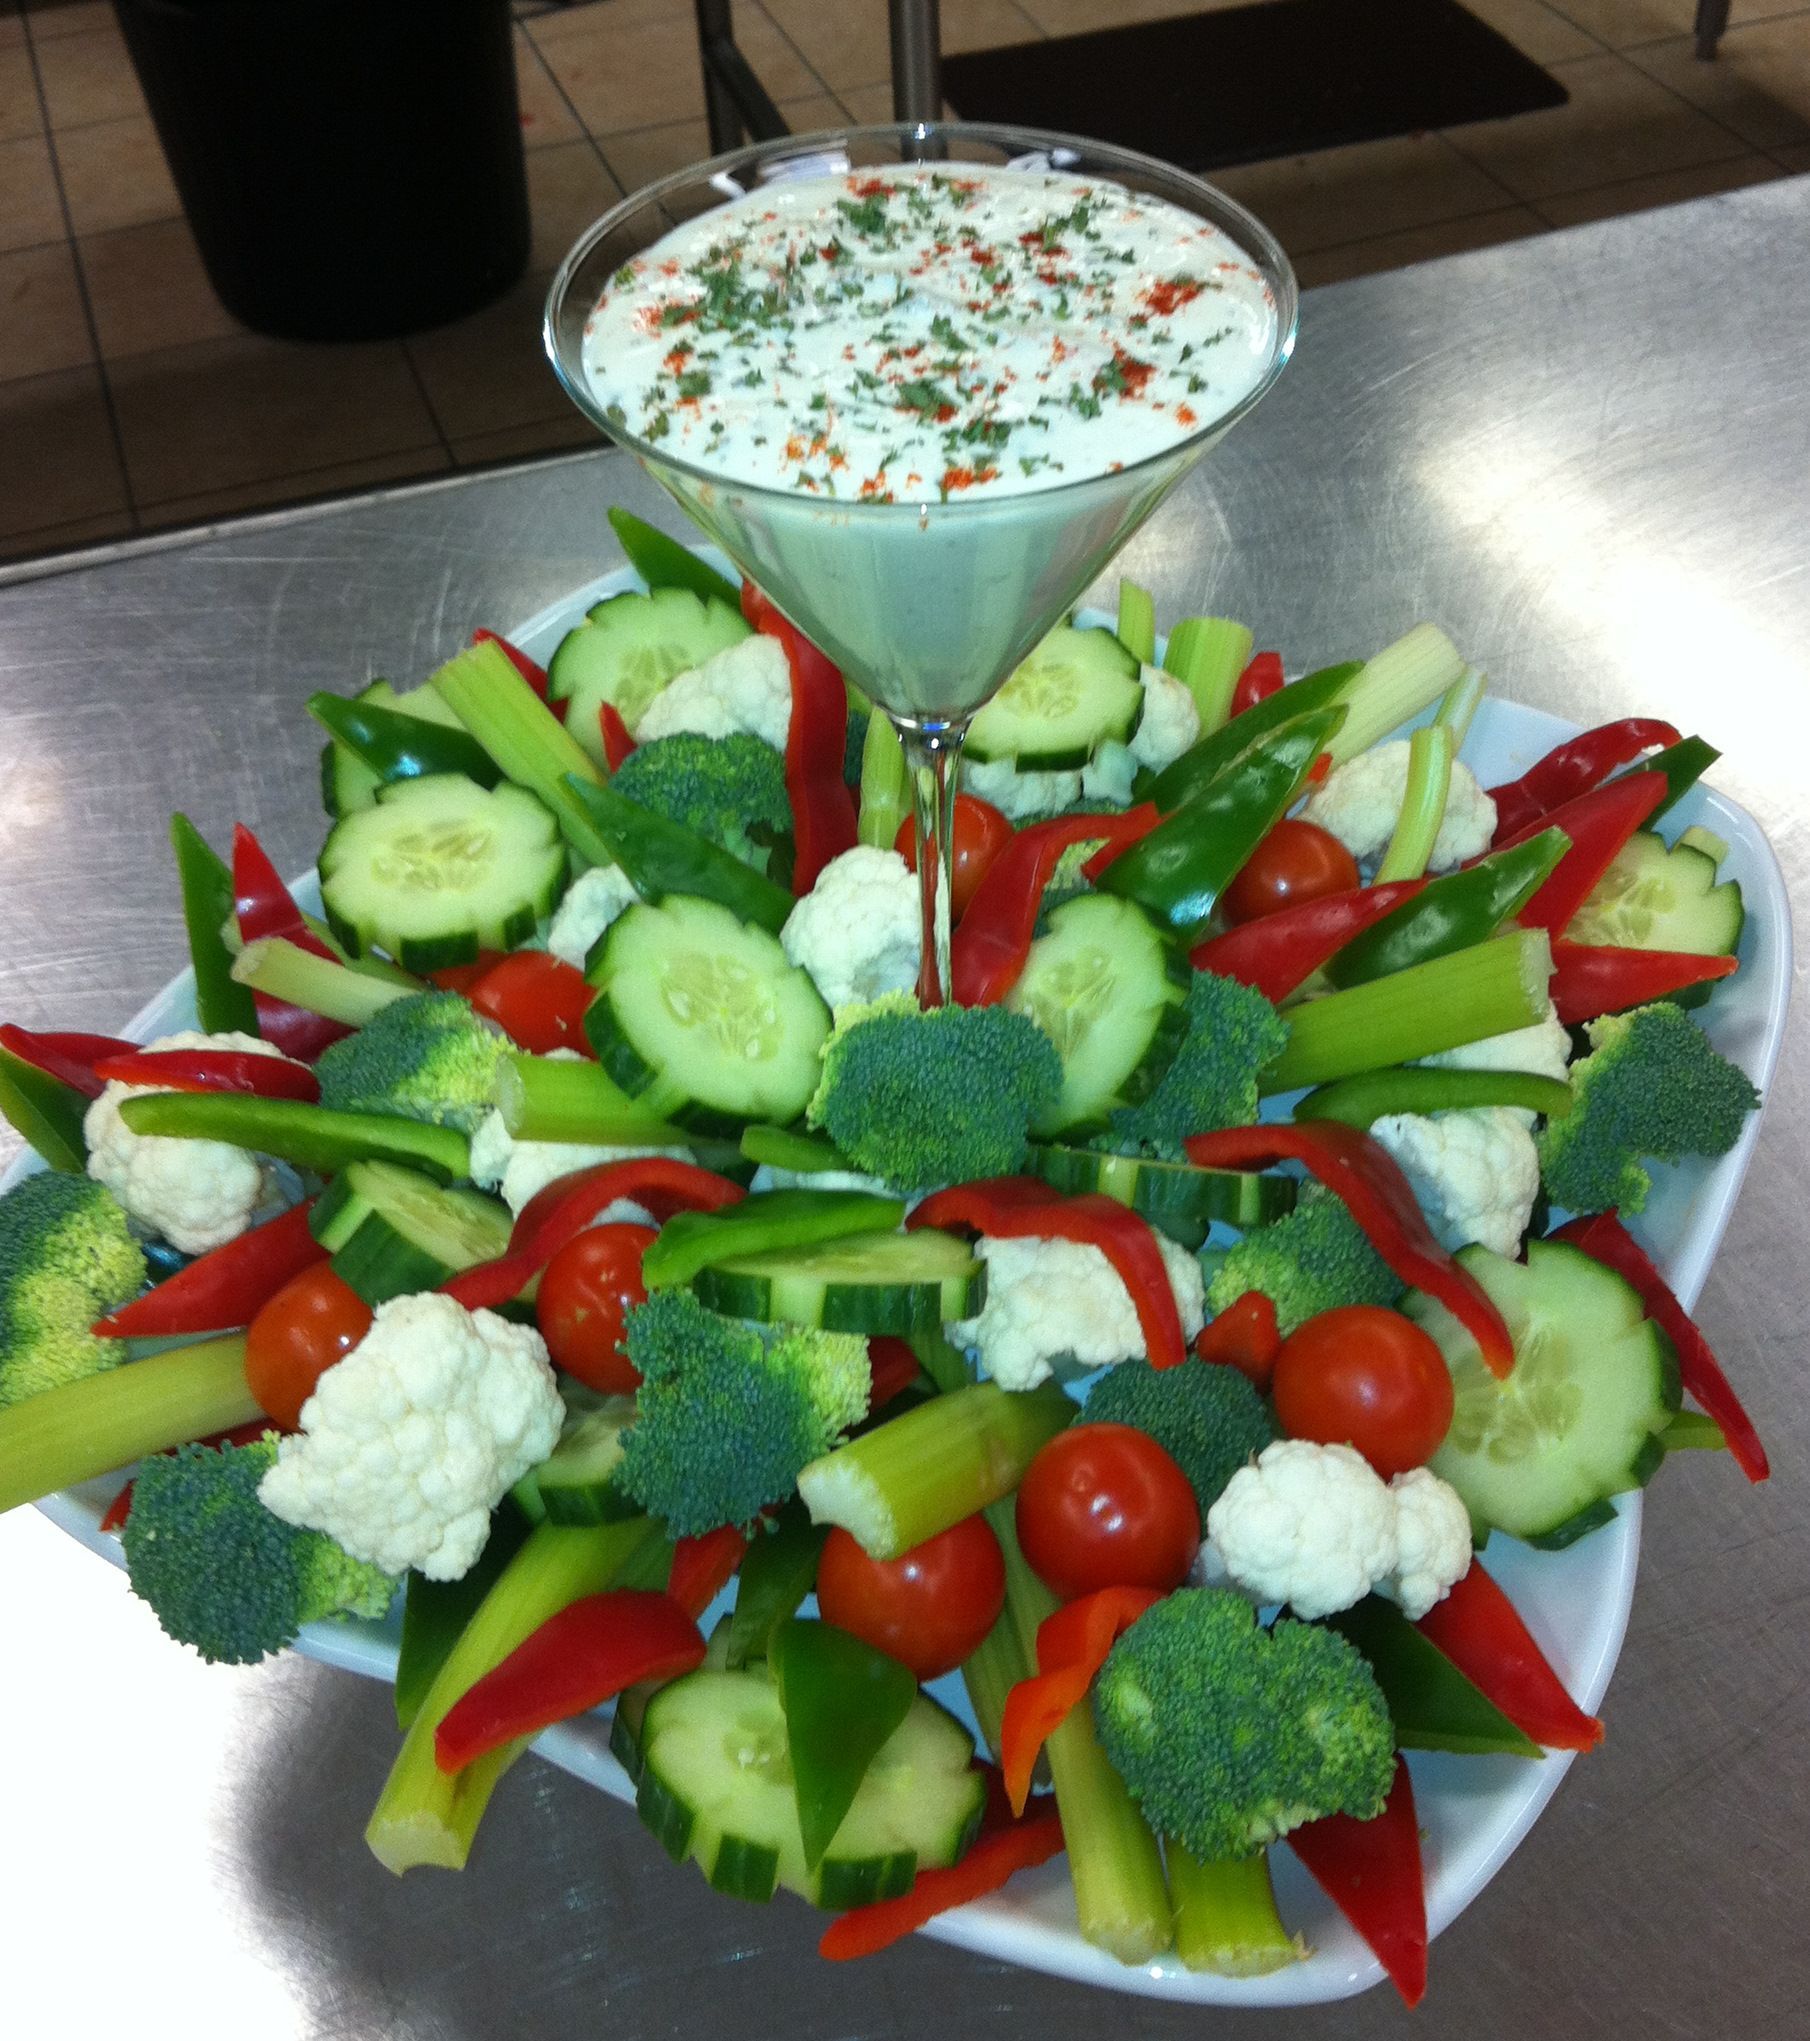 Use red, green, and white veggies for a festive Christmas veggie tray. Cheers!